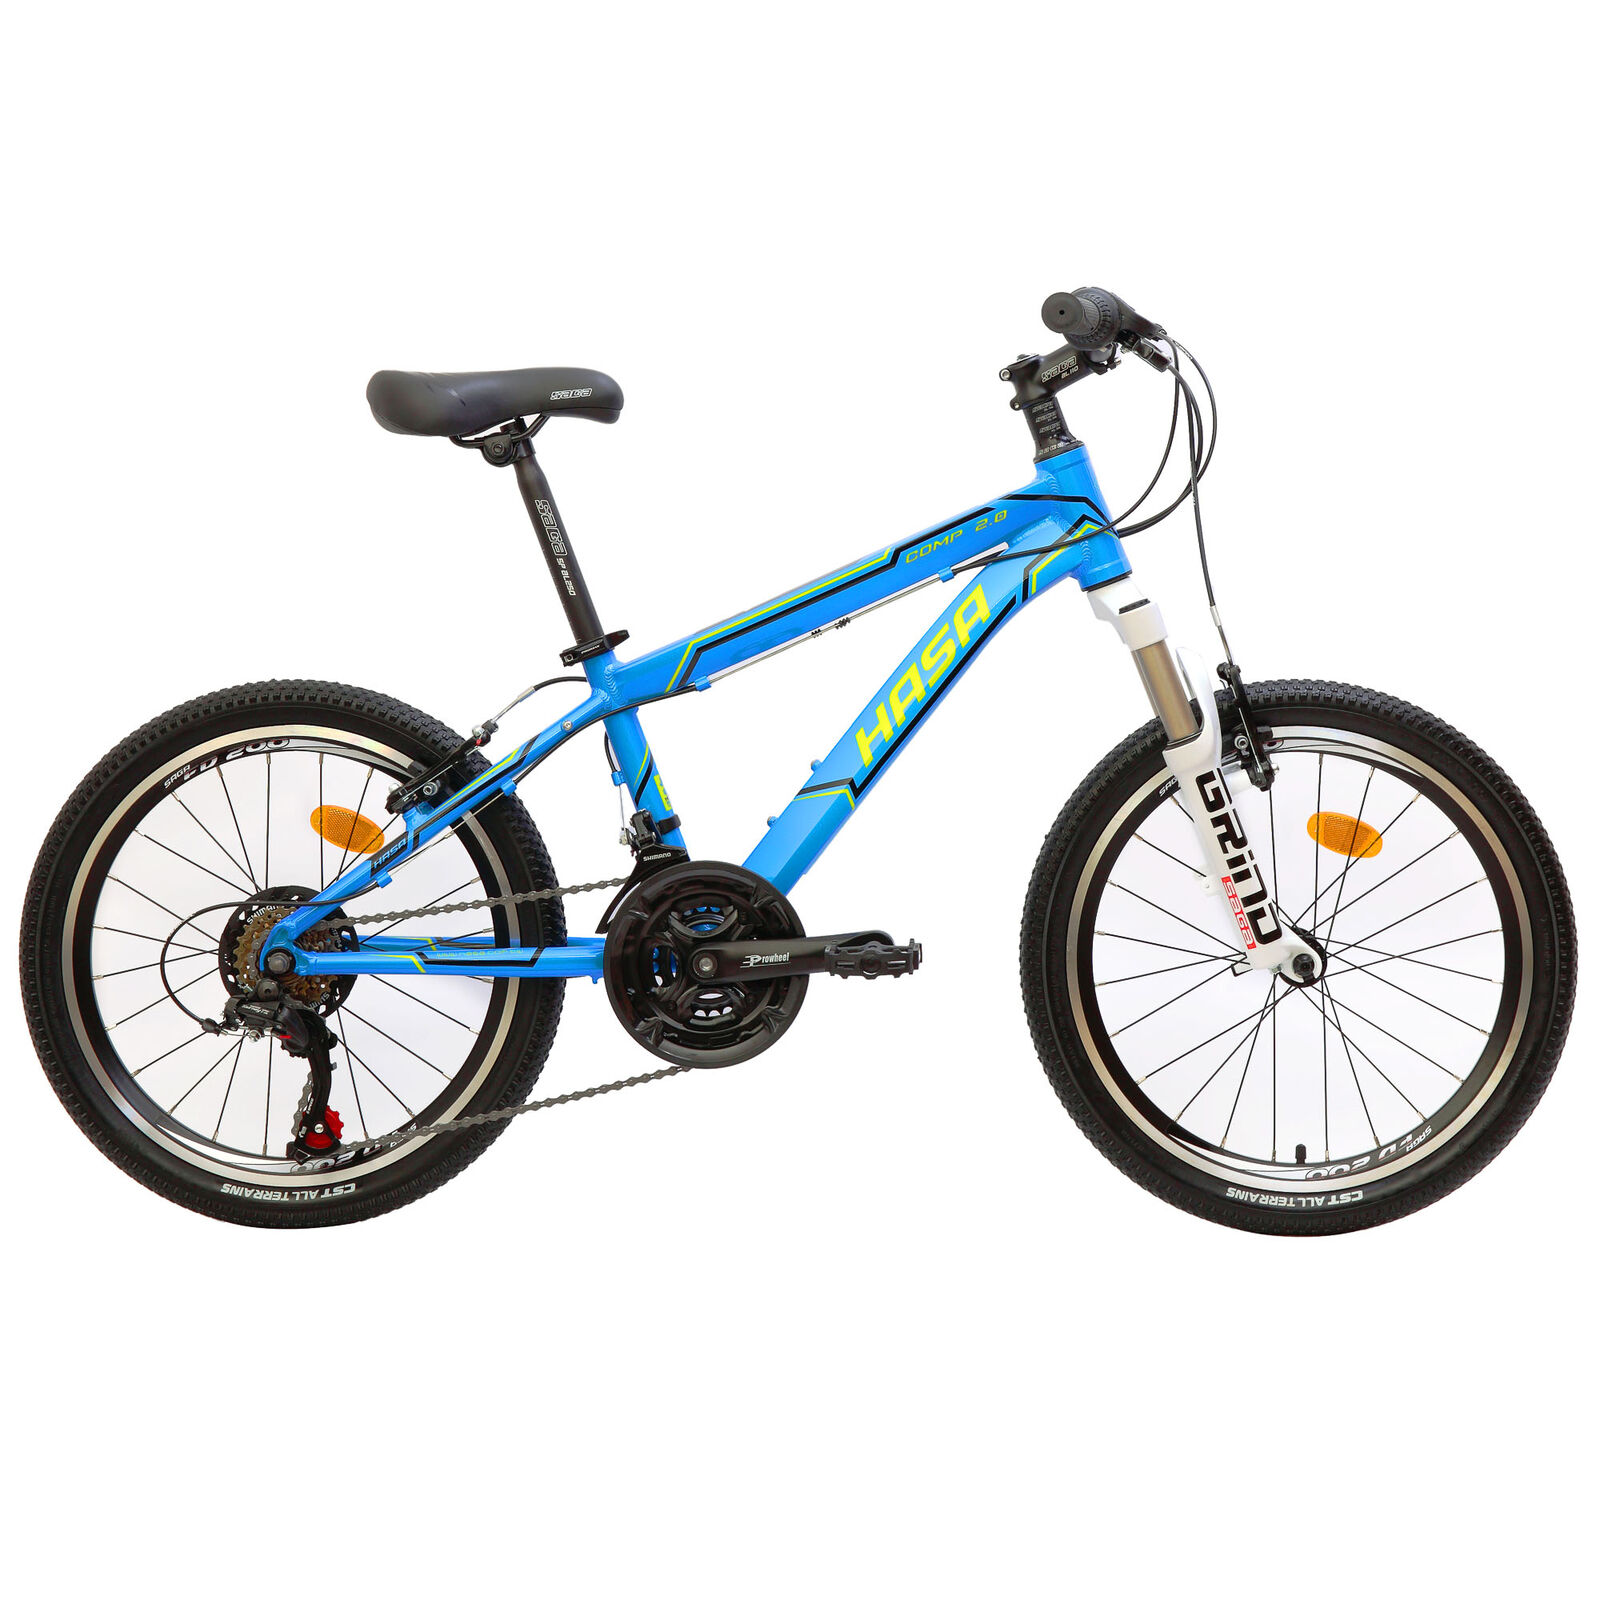 50cm Kids Mountain Bike Crusader 6 Speed Bicycle Boys Front Rear Brakes Durable For Sale Online Ebay